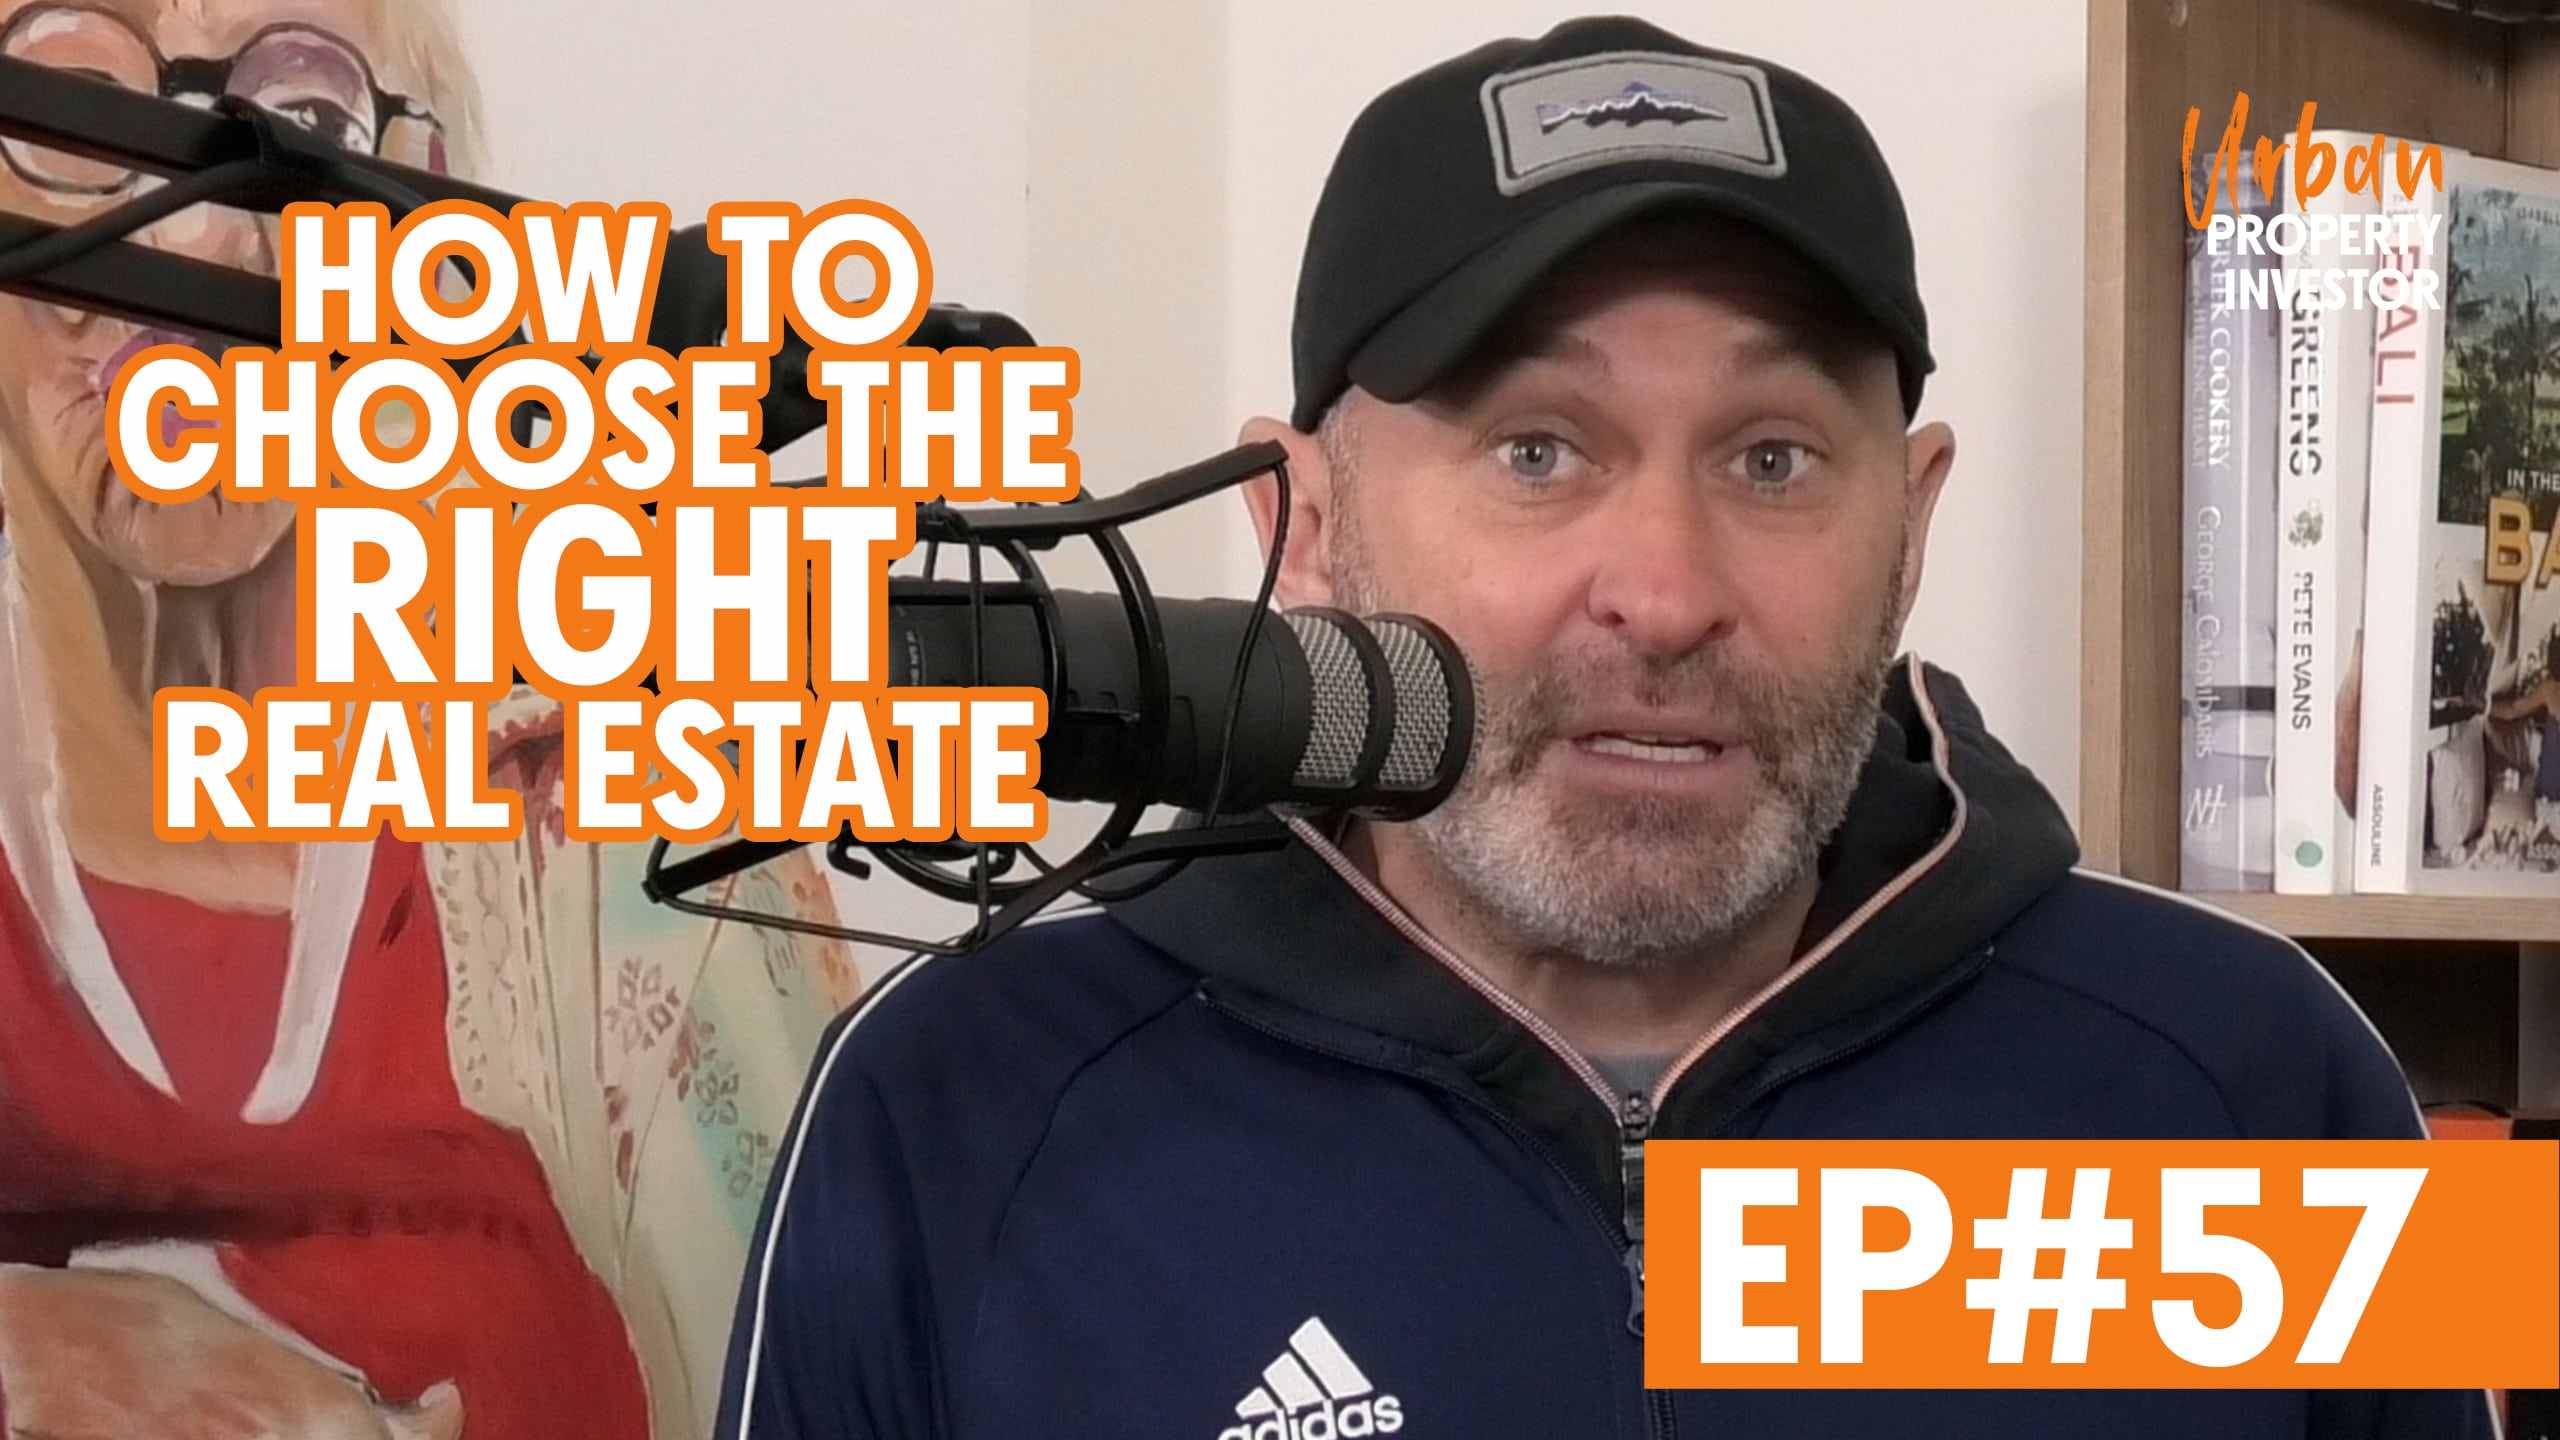 How To Choose The Right Real Estate